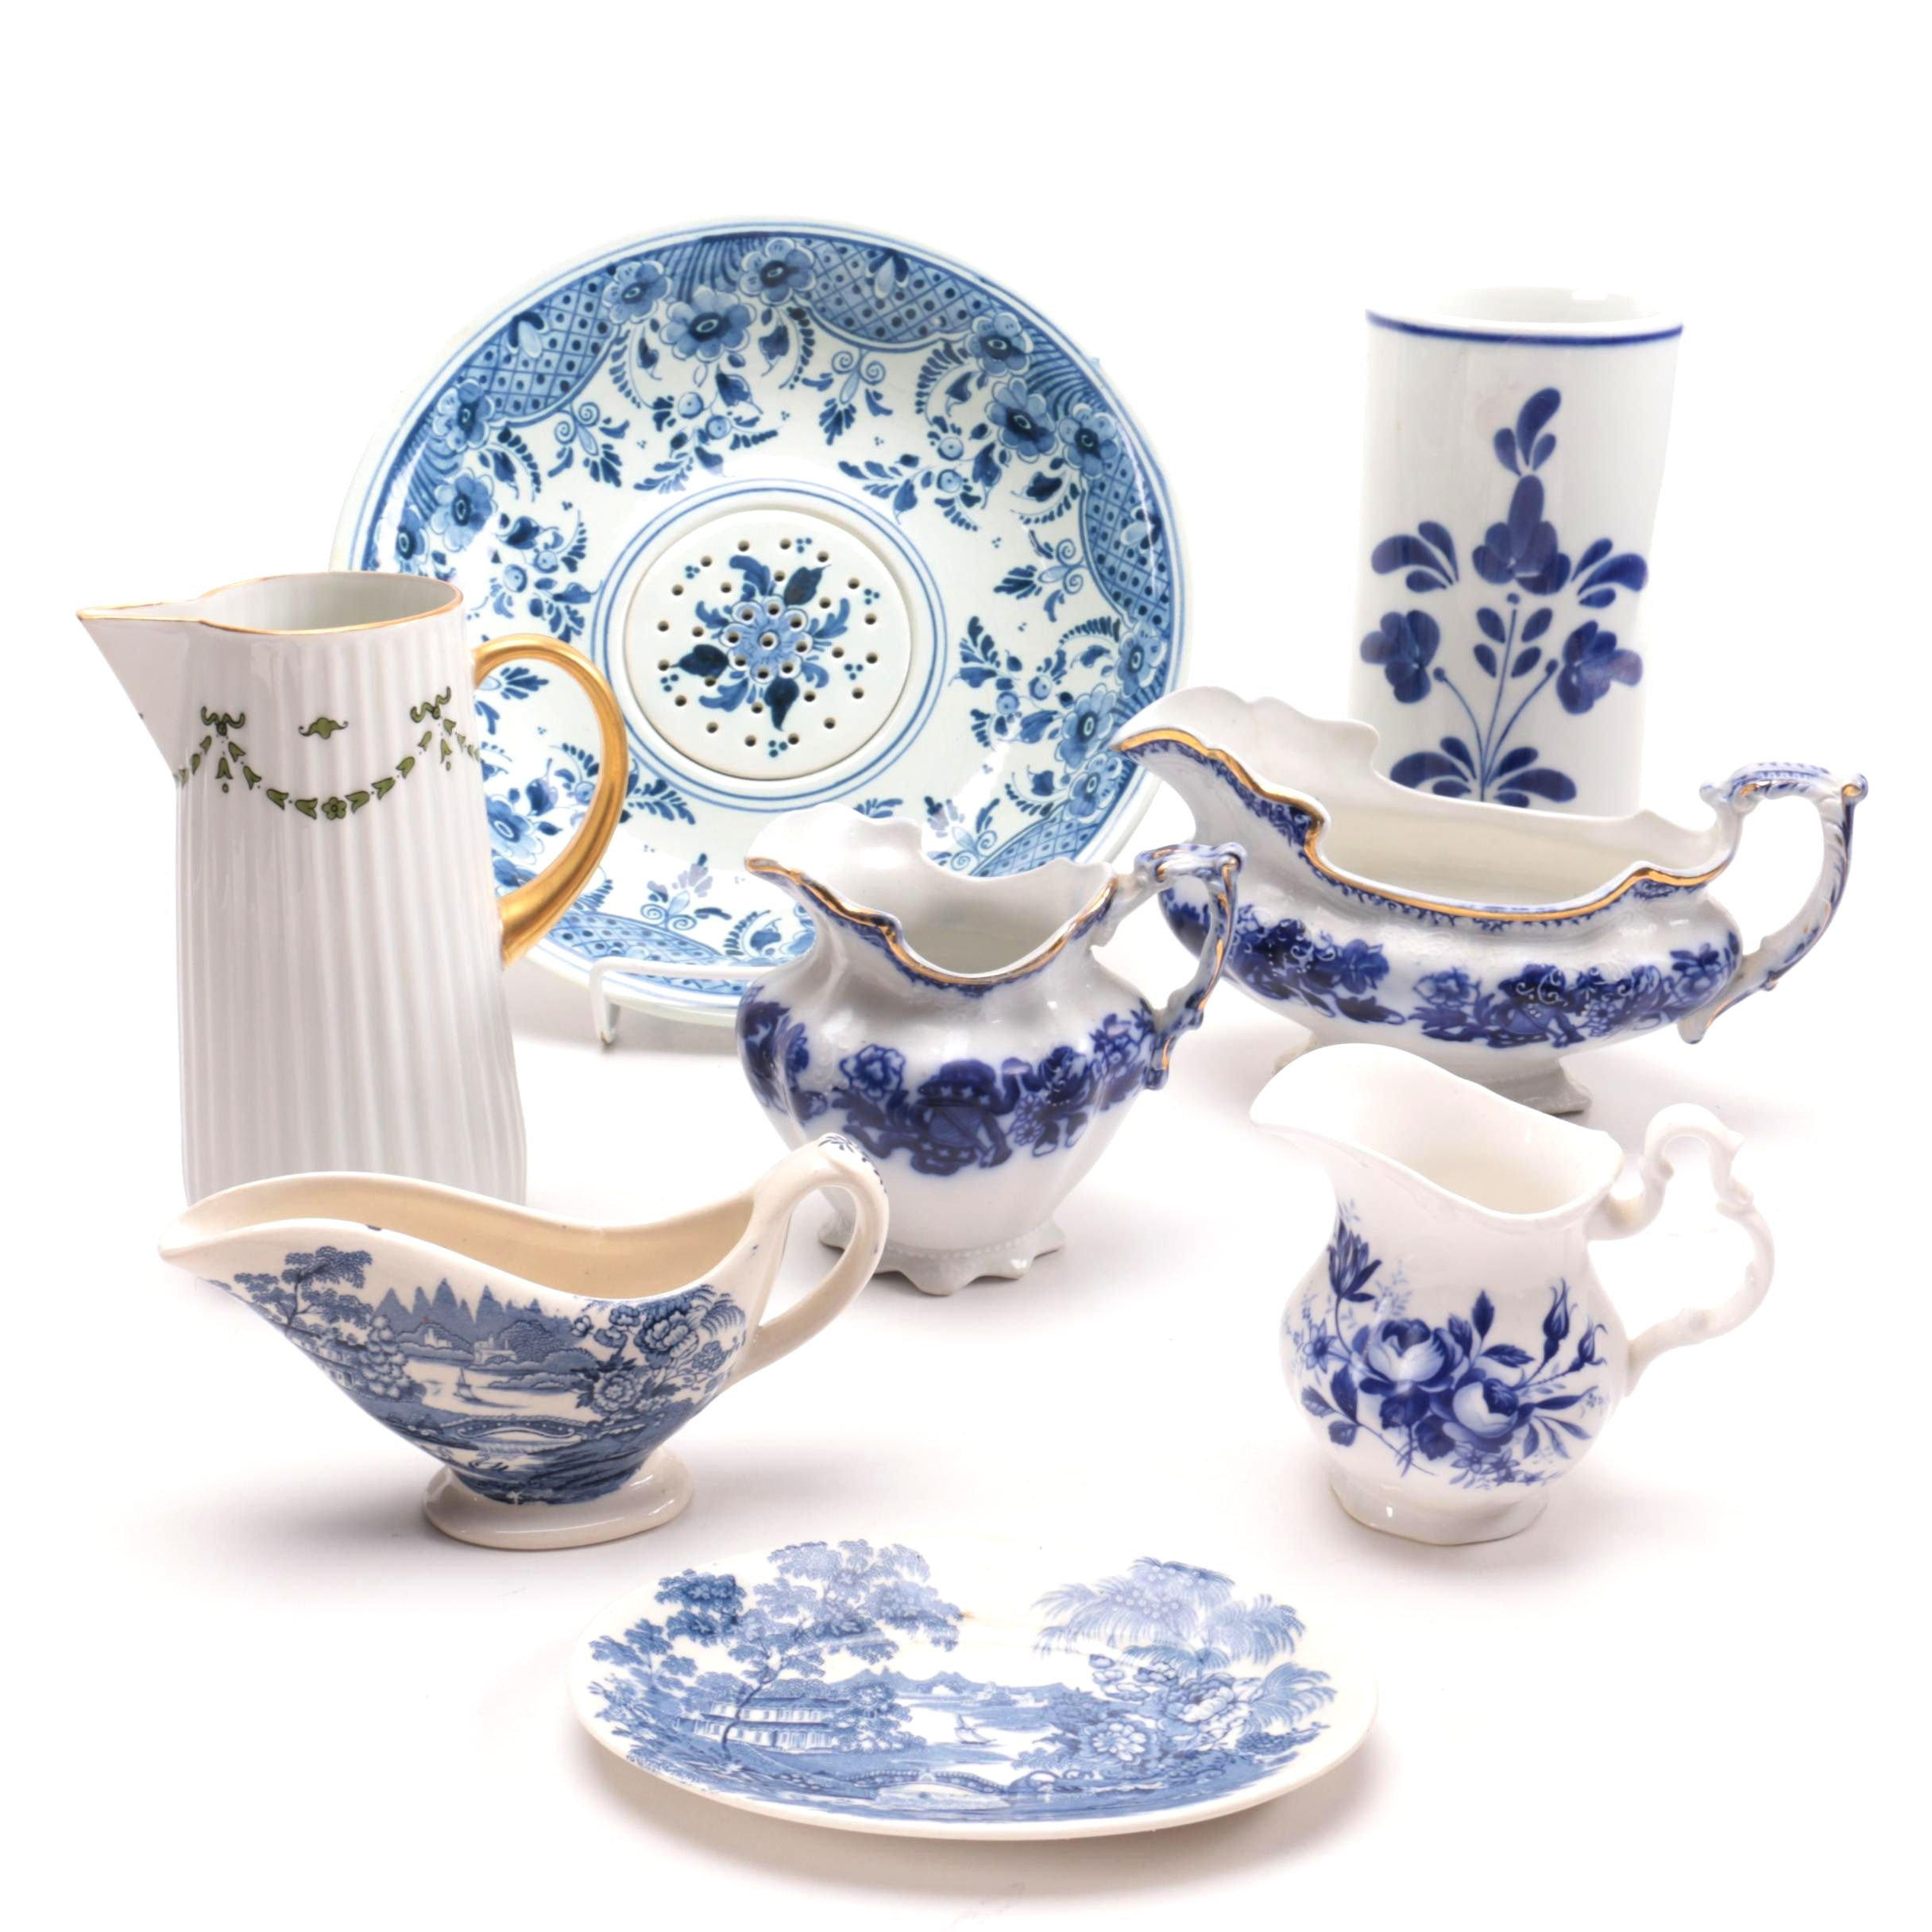 White and Blue Porcelain Serveware Collection